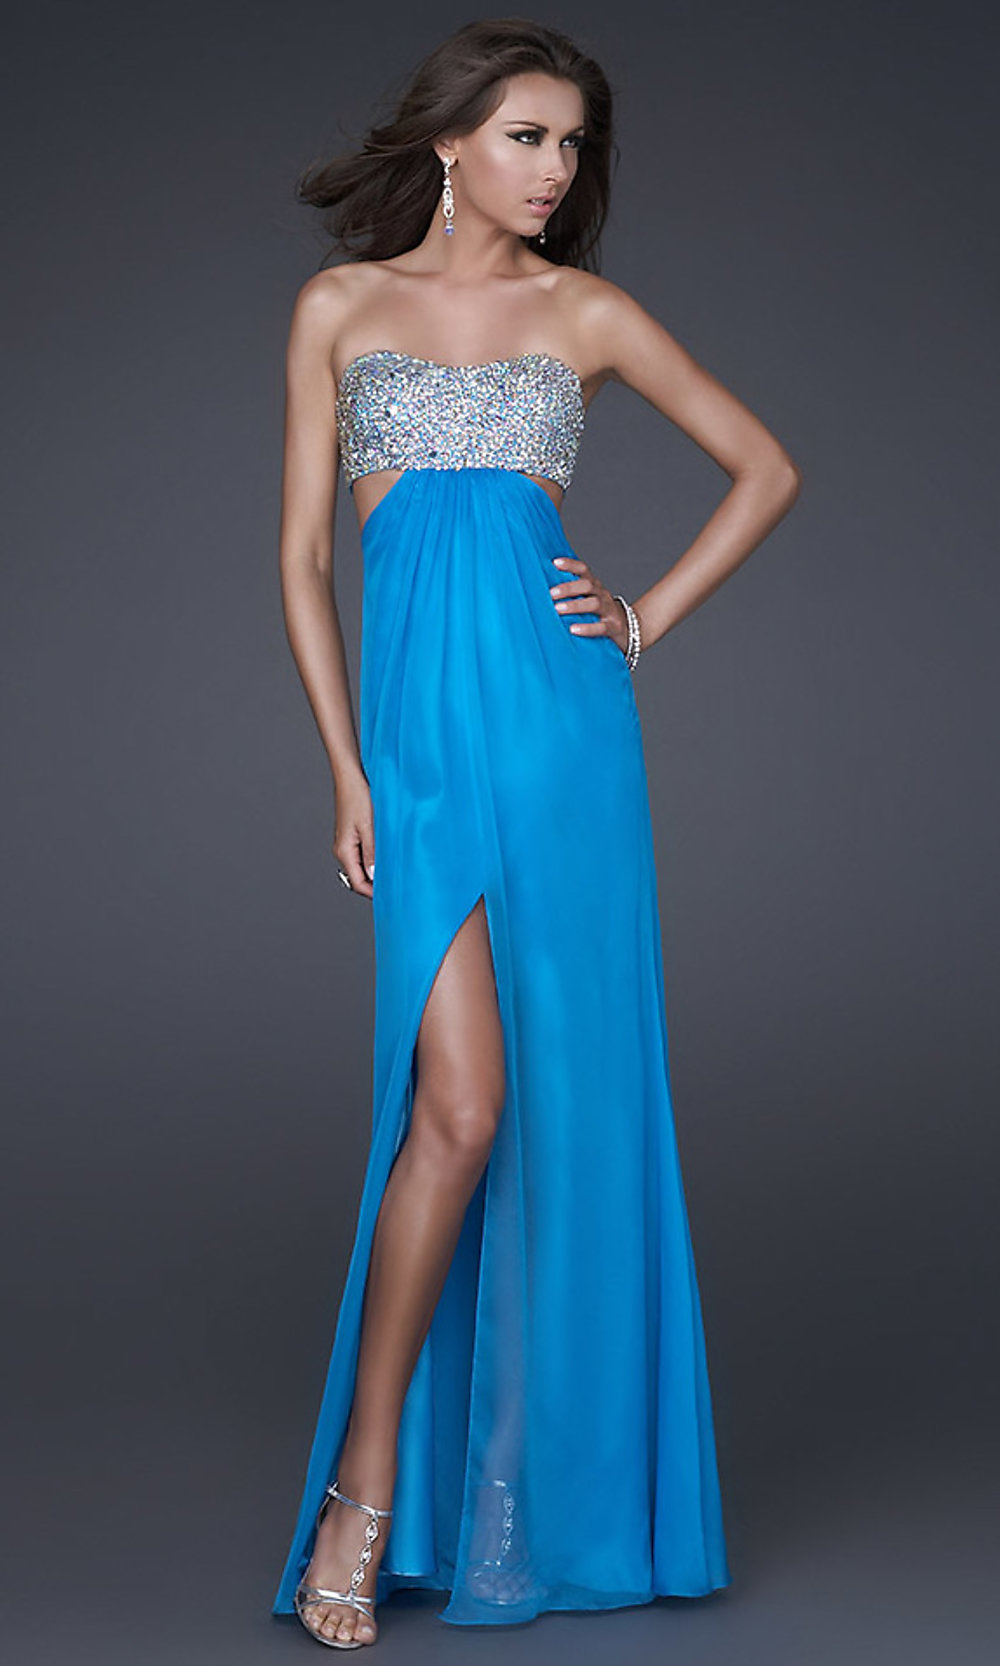 Beaded Evening Gown, Strapless Dress for Prom- PromGirl